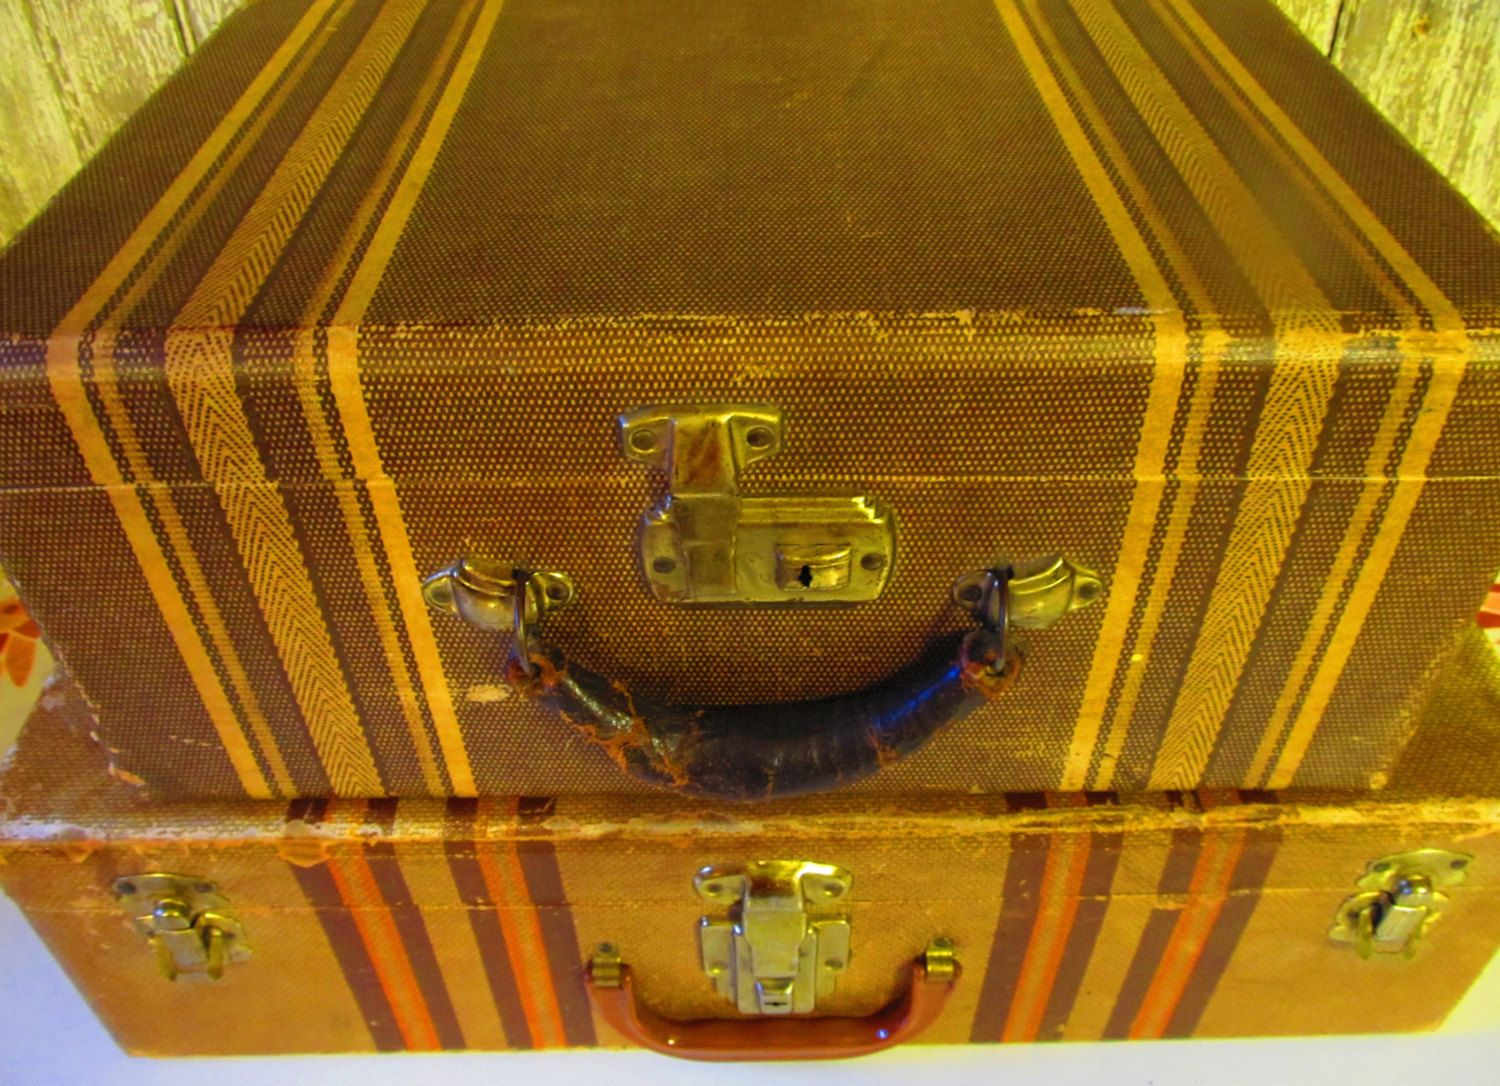 Antique Striped Suitcase Pair Vintage Luggage 1930u0027s/1940u0027s Stacking Set  Leather Handle Paper Interior Home Decor Storage